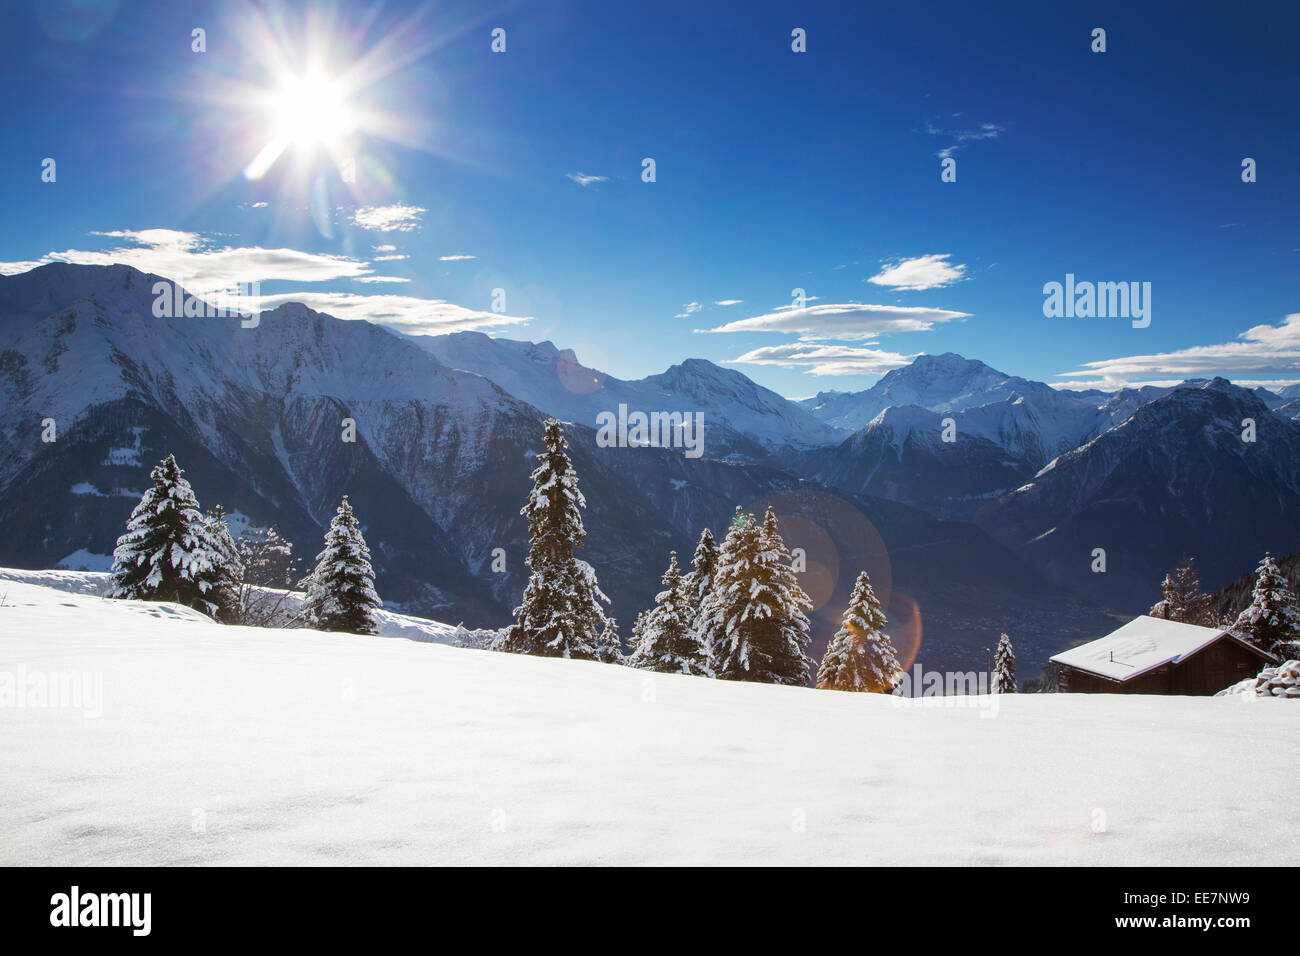 Swiss wooden chalet in the snow in winter in the Alps, Wallis / Valais, Switzerland - Stock Image